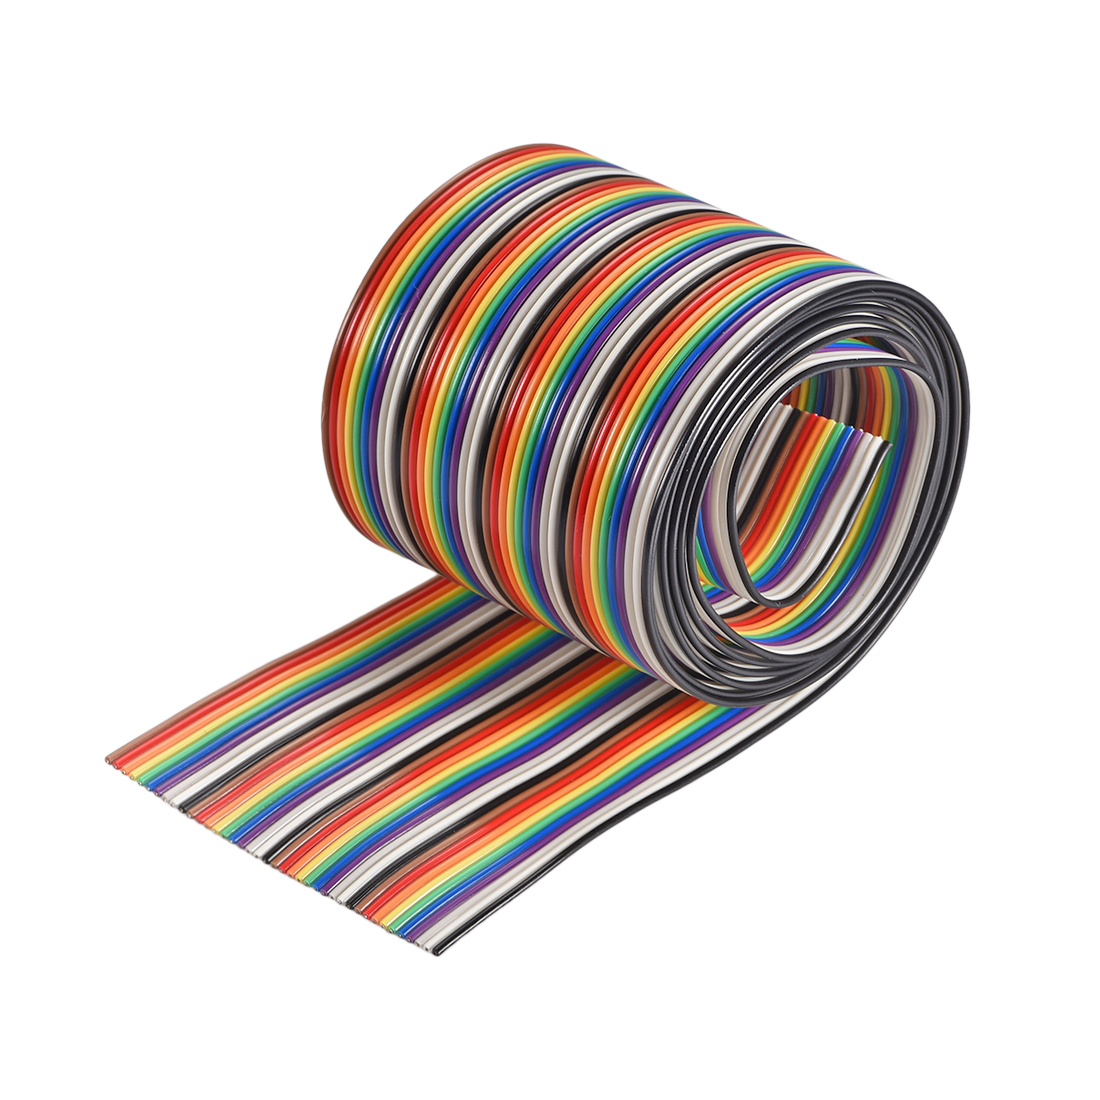 IDC Rainbow Wire Flat Ribbon Cable 40P 1.27mm Pitch 1meter/3.3ft Length